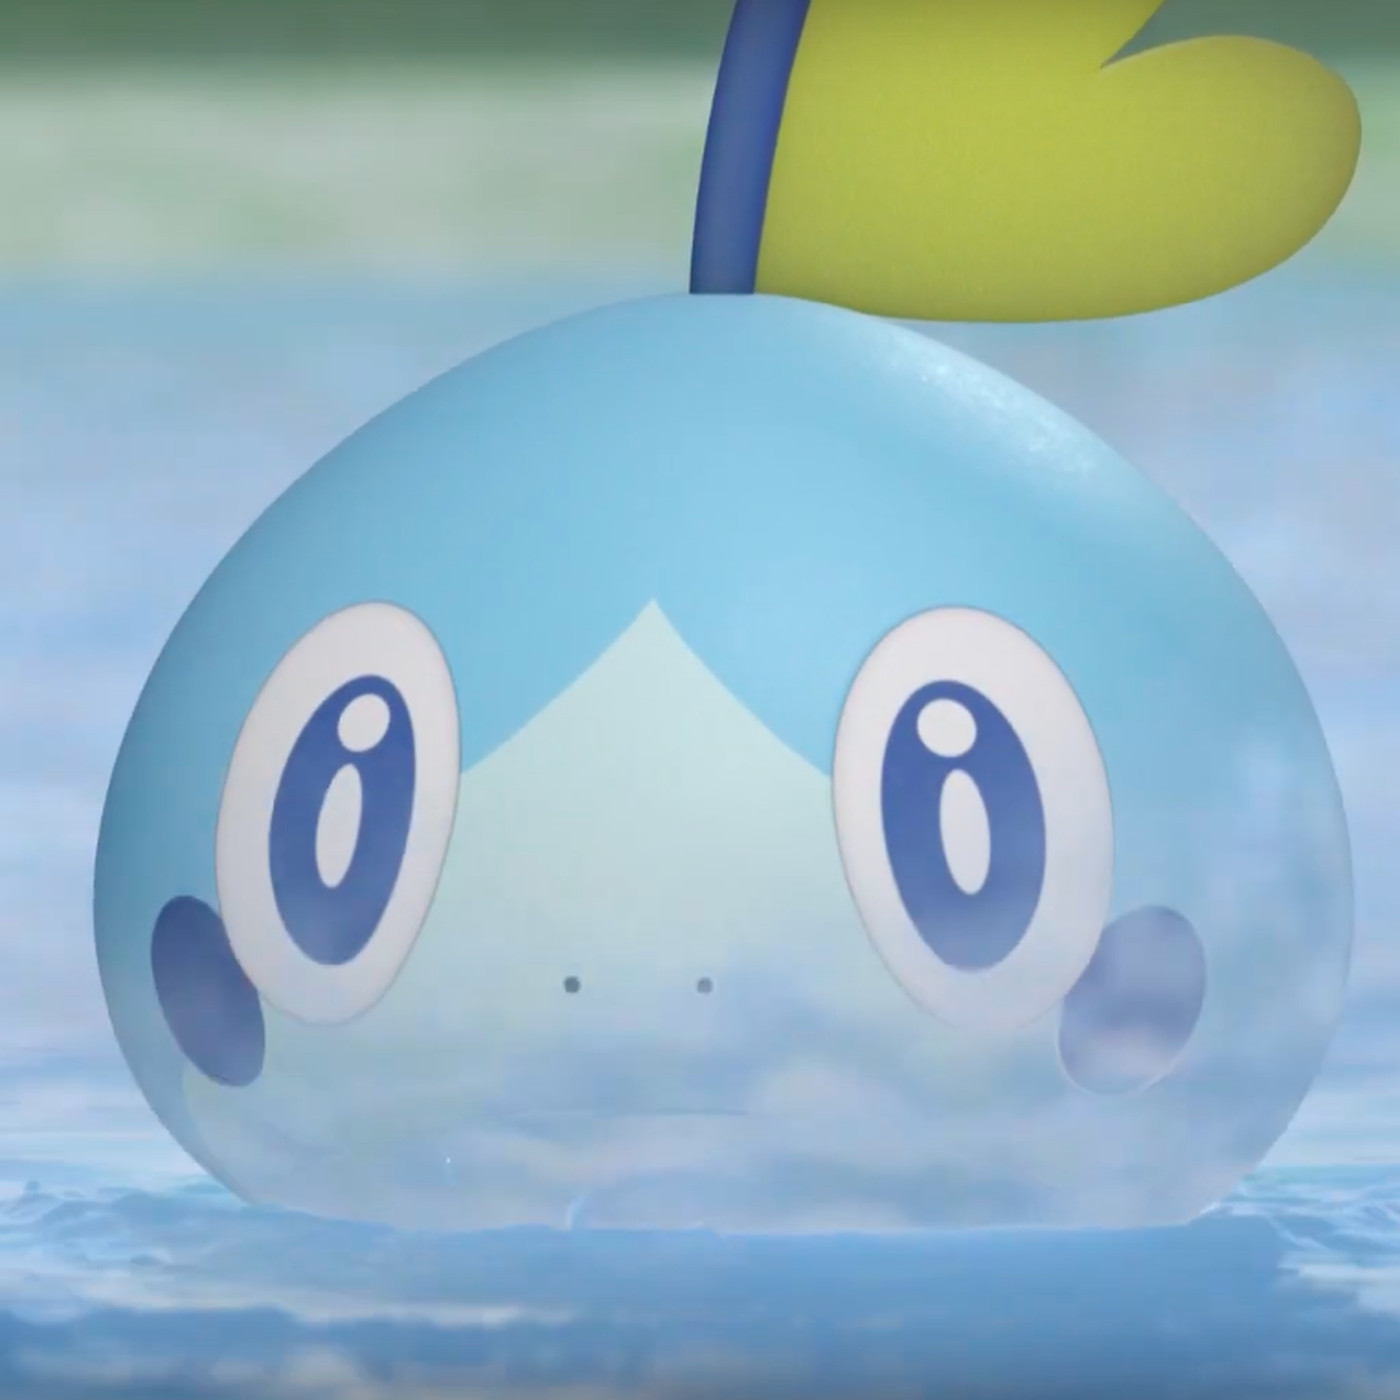 Pokémon Sword and Shield fans want to protect Sobble at all